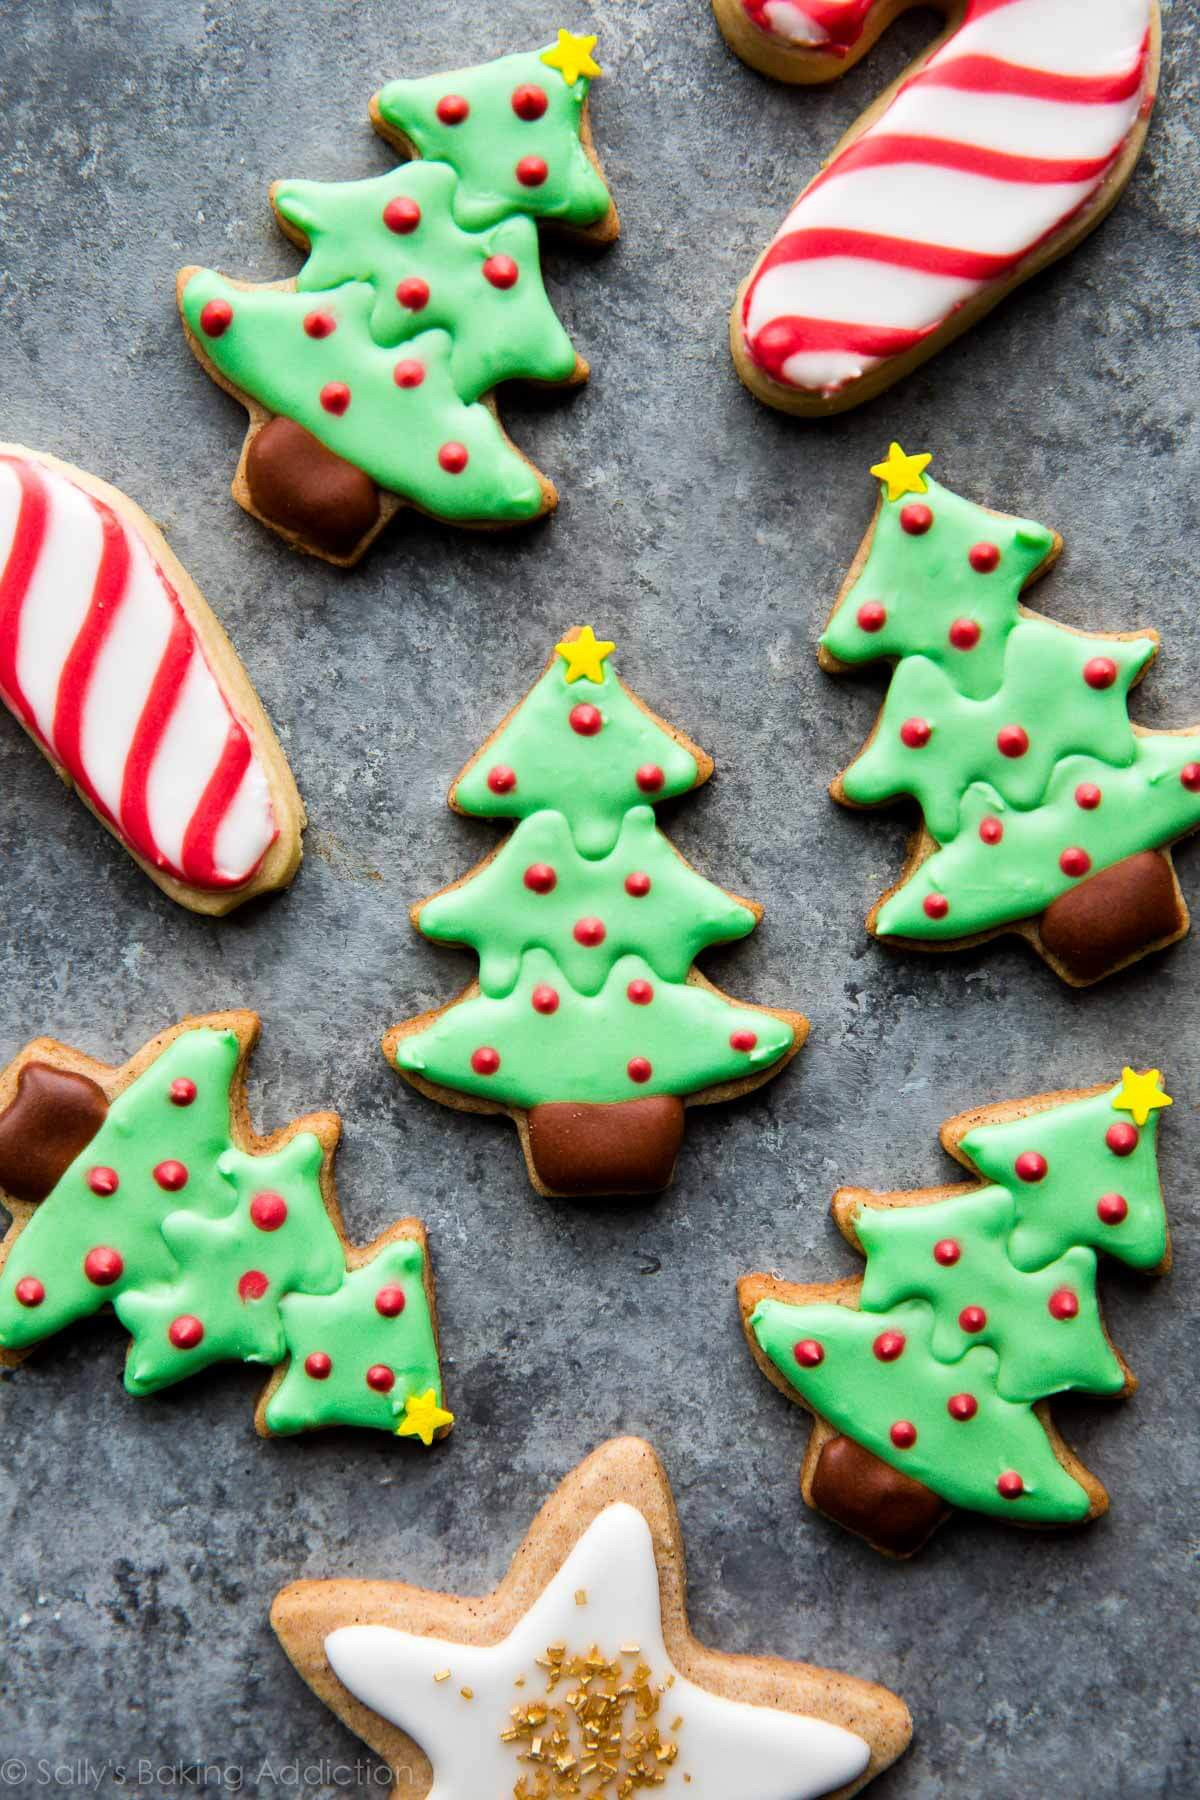 How To Decorate Christmas Cookies  1 Sugar Cookie Dough 5 Ways to Decorate Sallys Baking